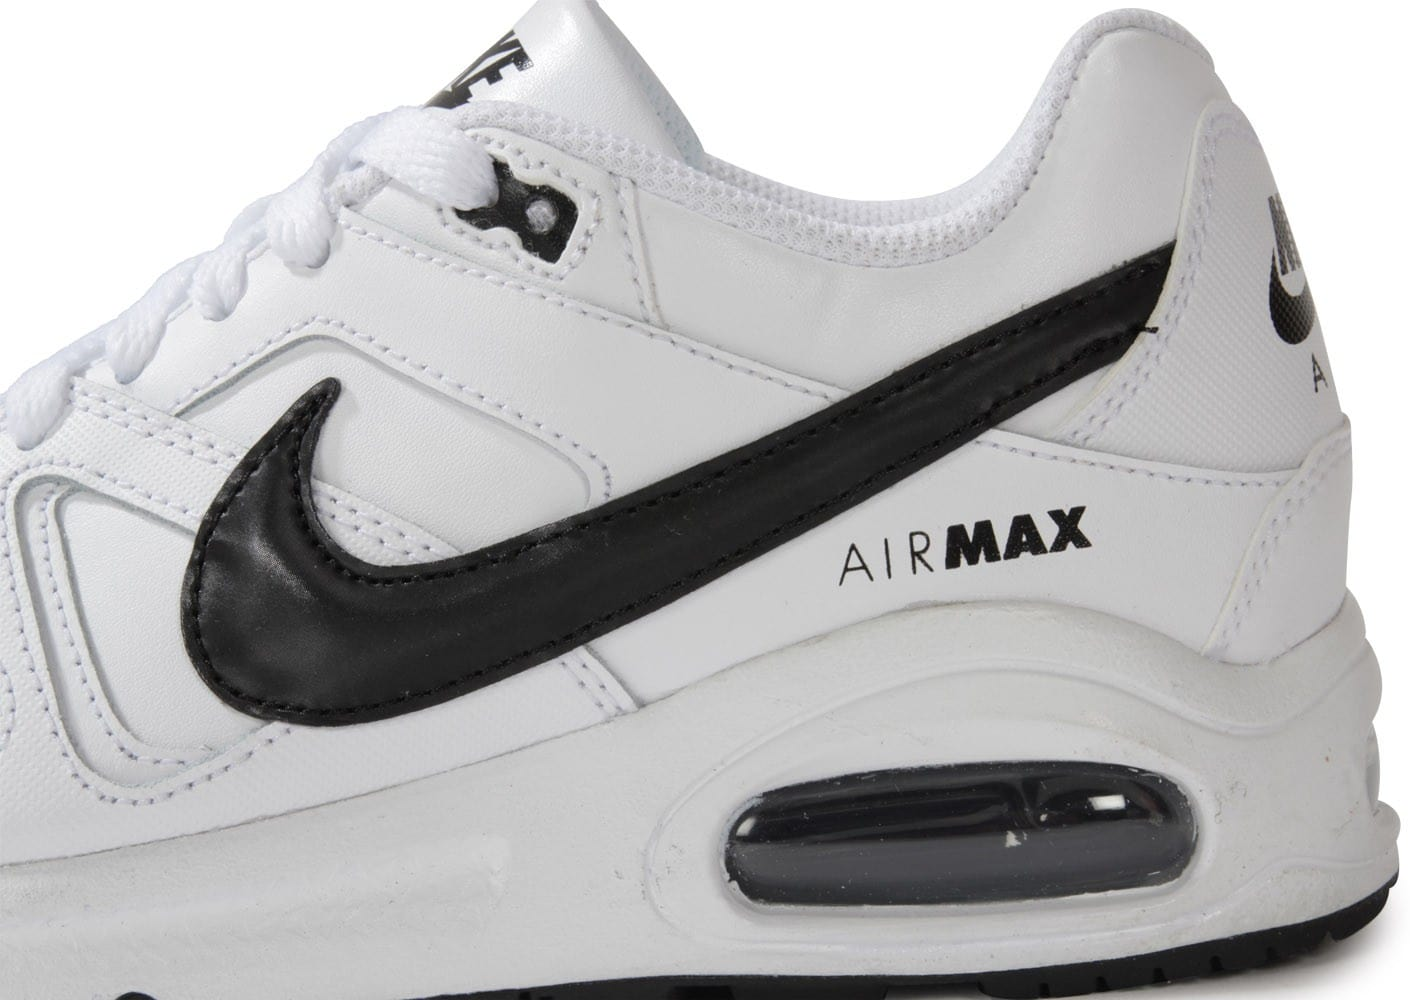 new styles fd09f 5435c ... Chaussures Nike Air Max Command Gs Blanc Et Noir vue dessus